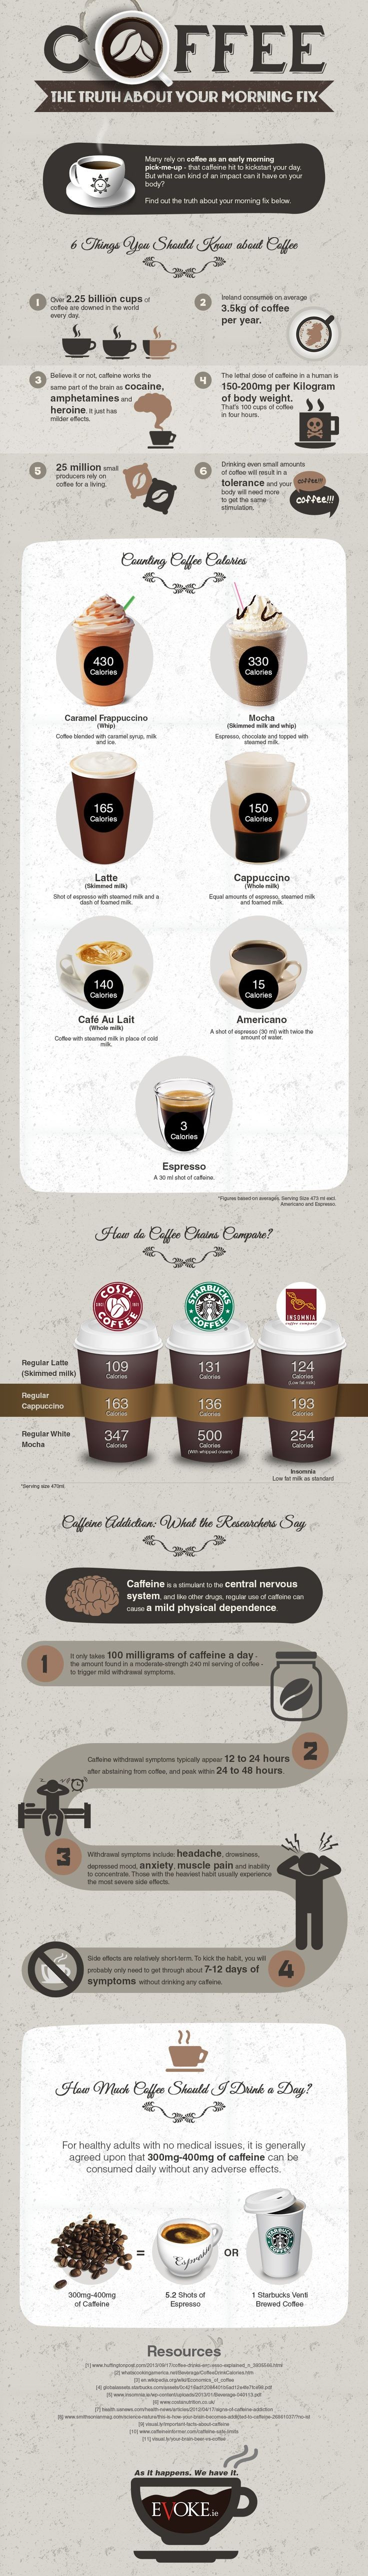 Interesting factoids about coffee are contained in the infographic below sent to me and used with